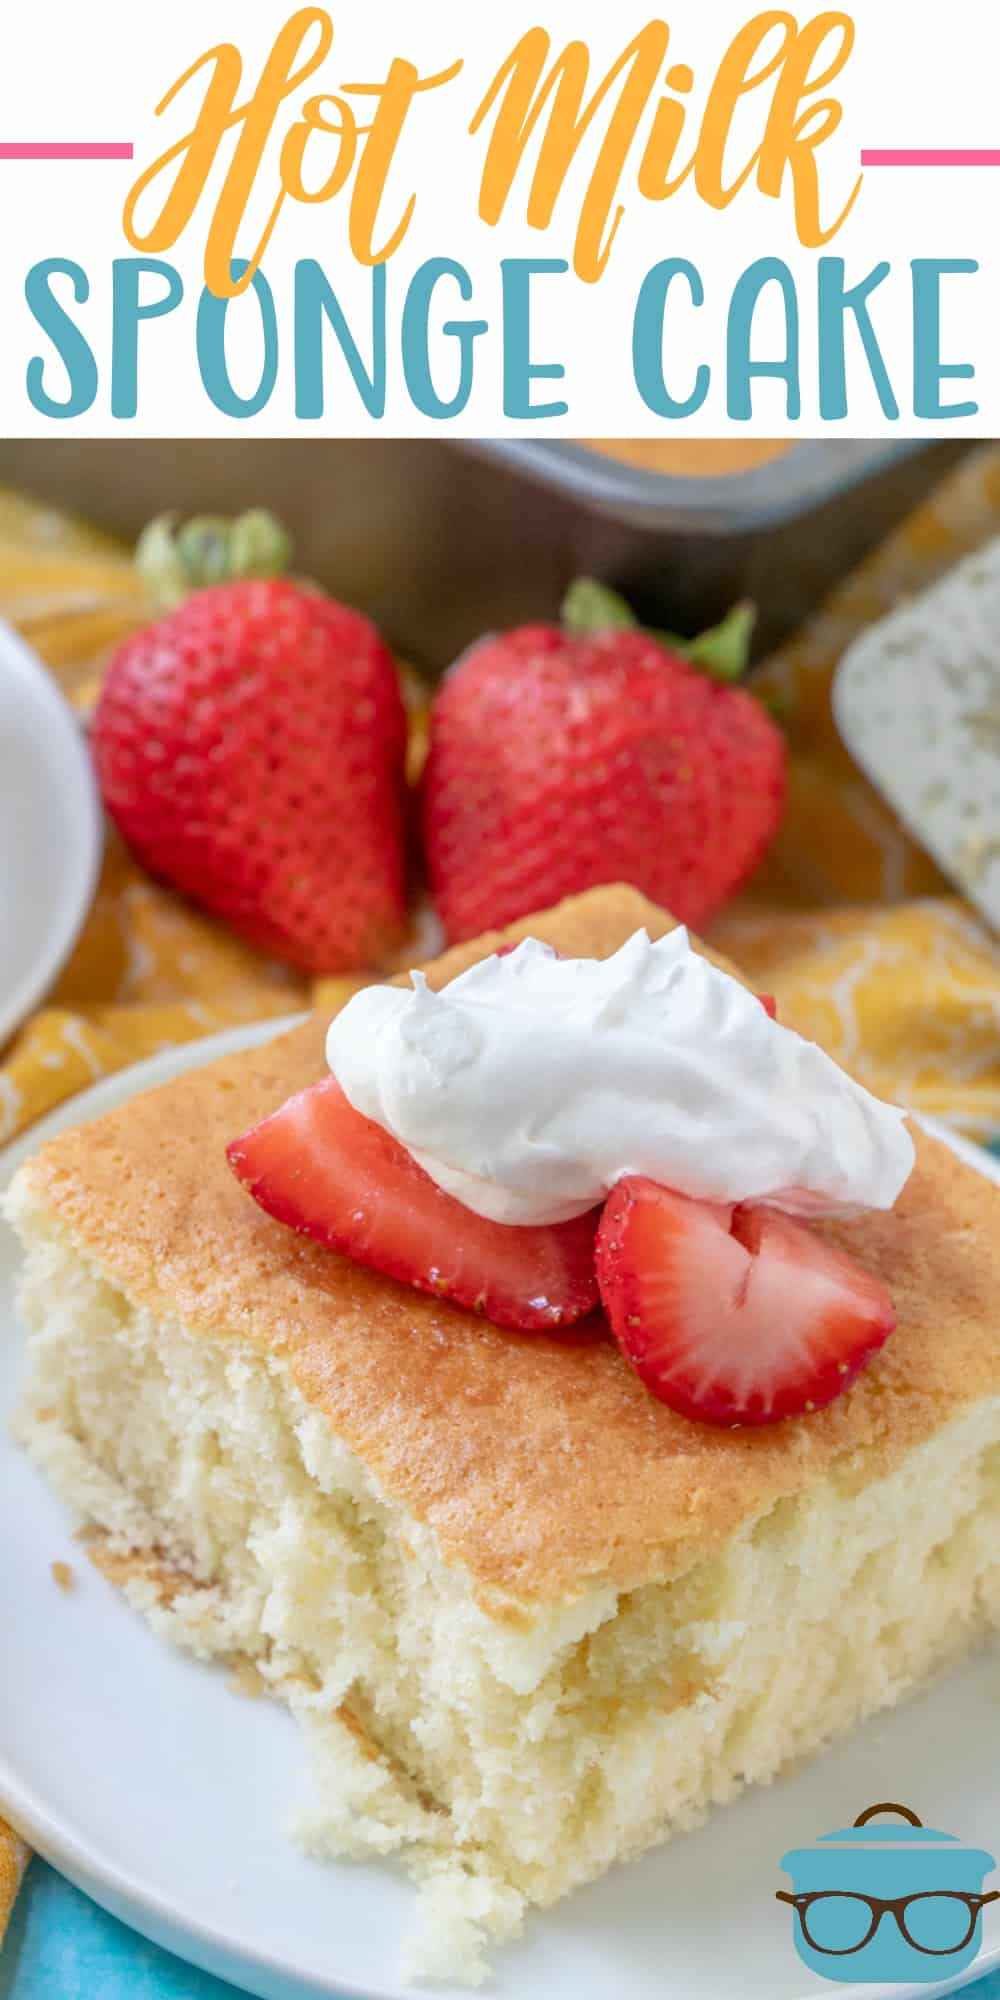 Hot Milk Sponge Cake with Strawberries is a super simple, old-fashioned recipe that is light, moist and has incredible flavor! #homemade #spongecake